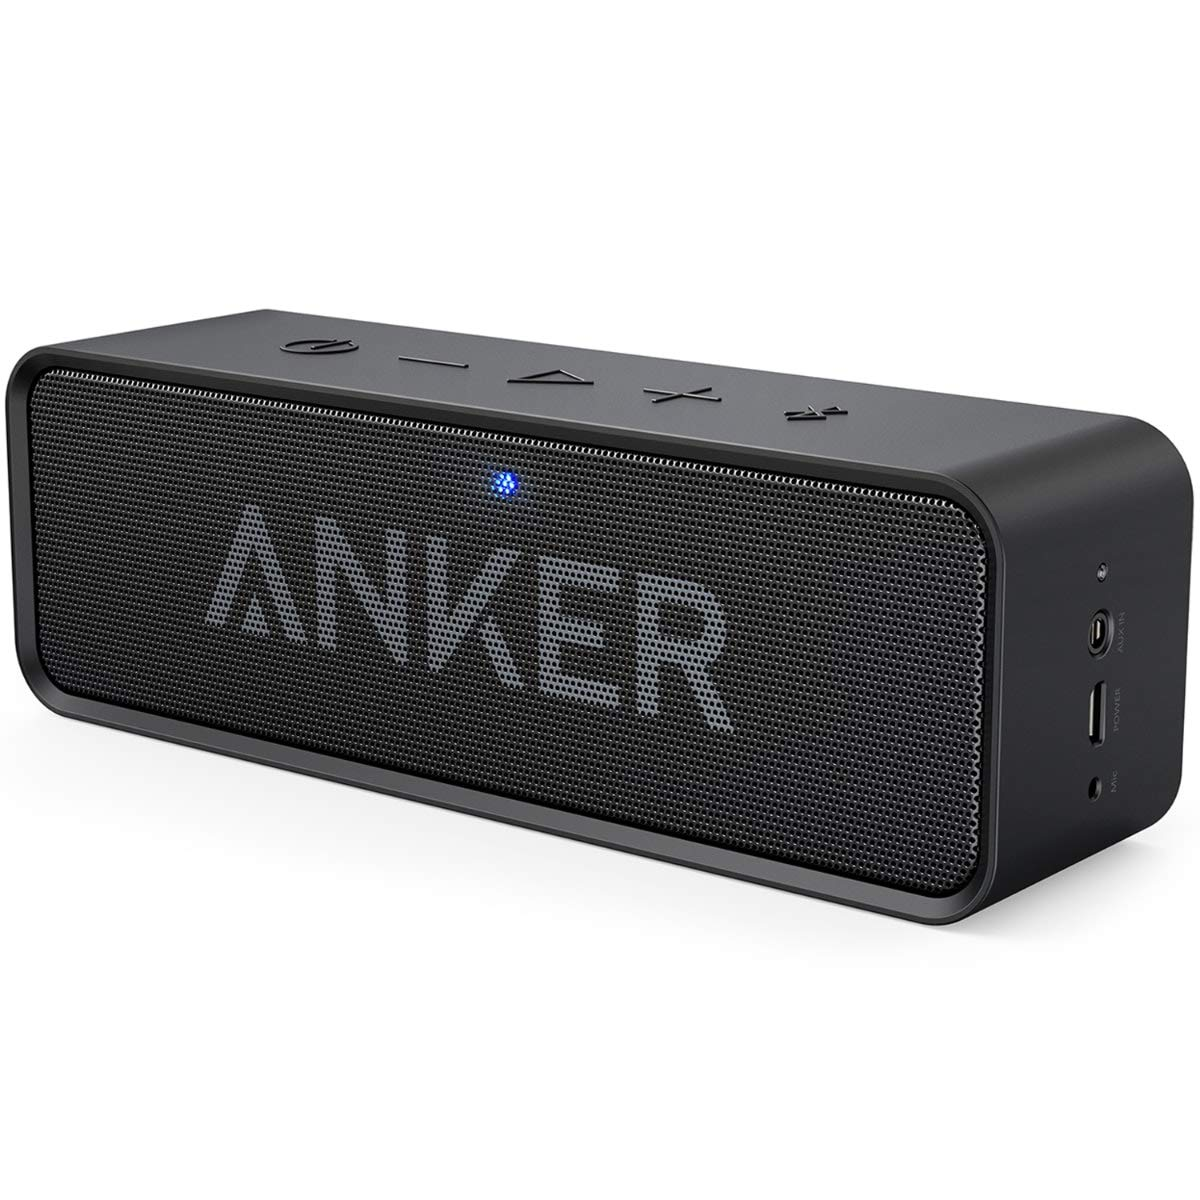 Anker SoundCore Bluetooth Speaker Portable Bluetooth 4.0 Stereo Speaker